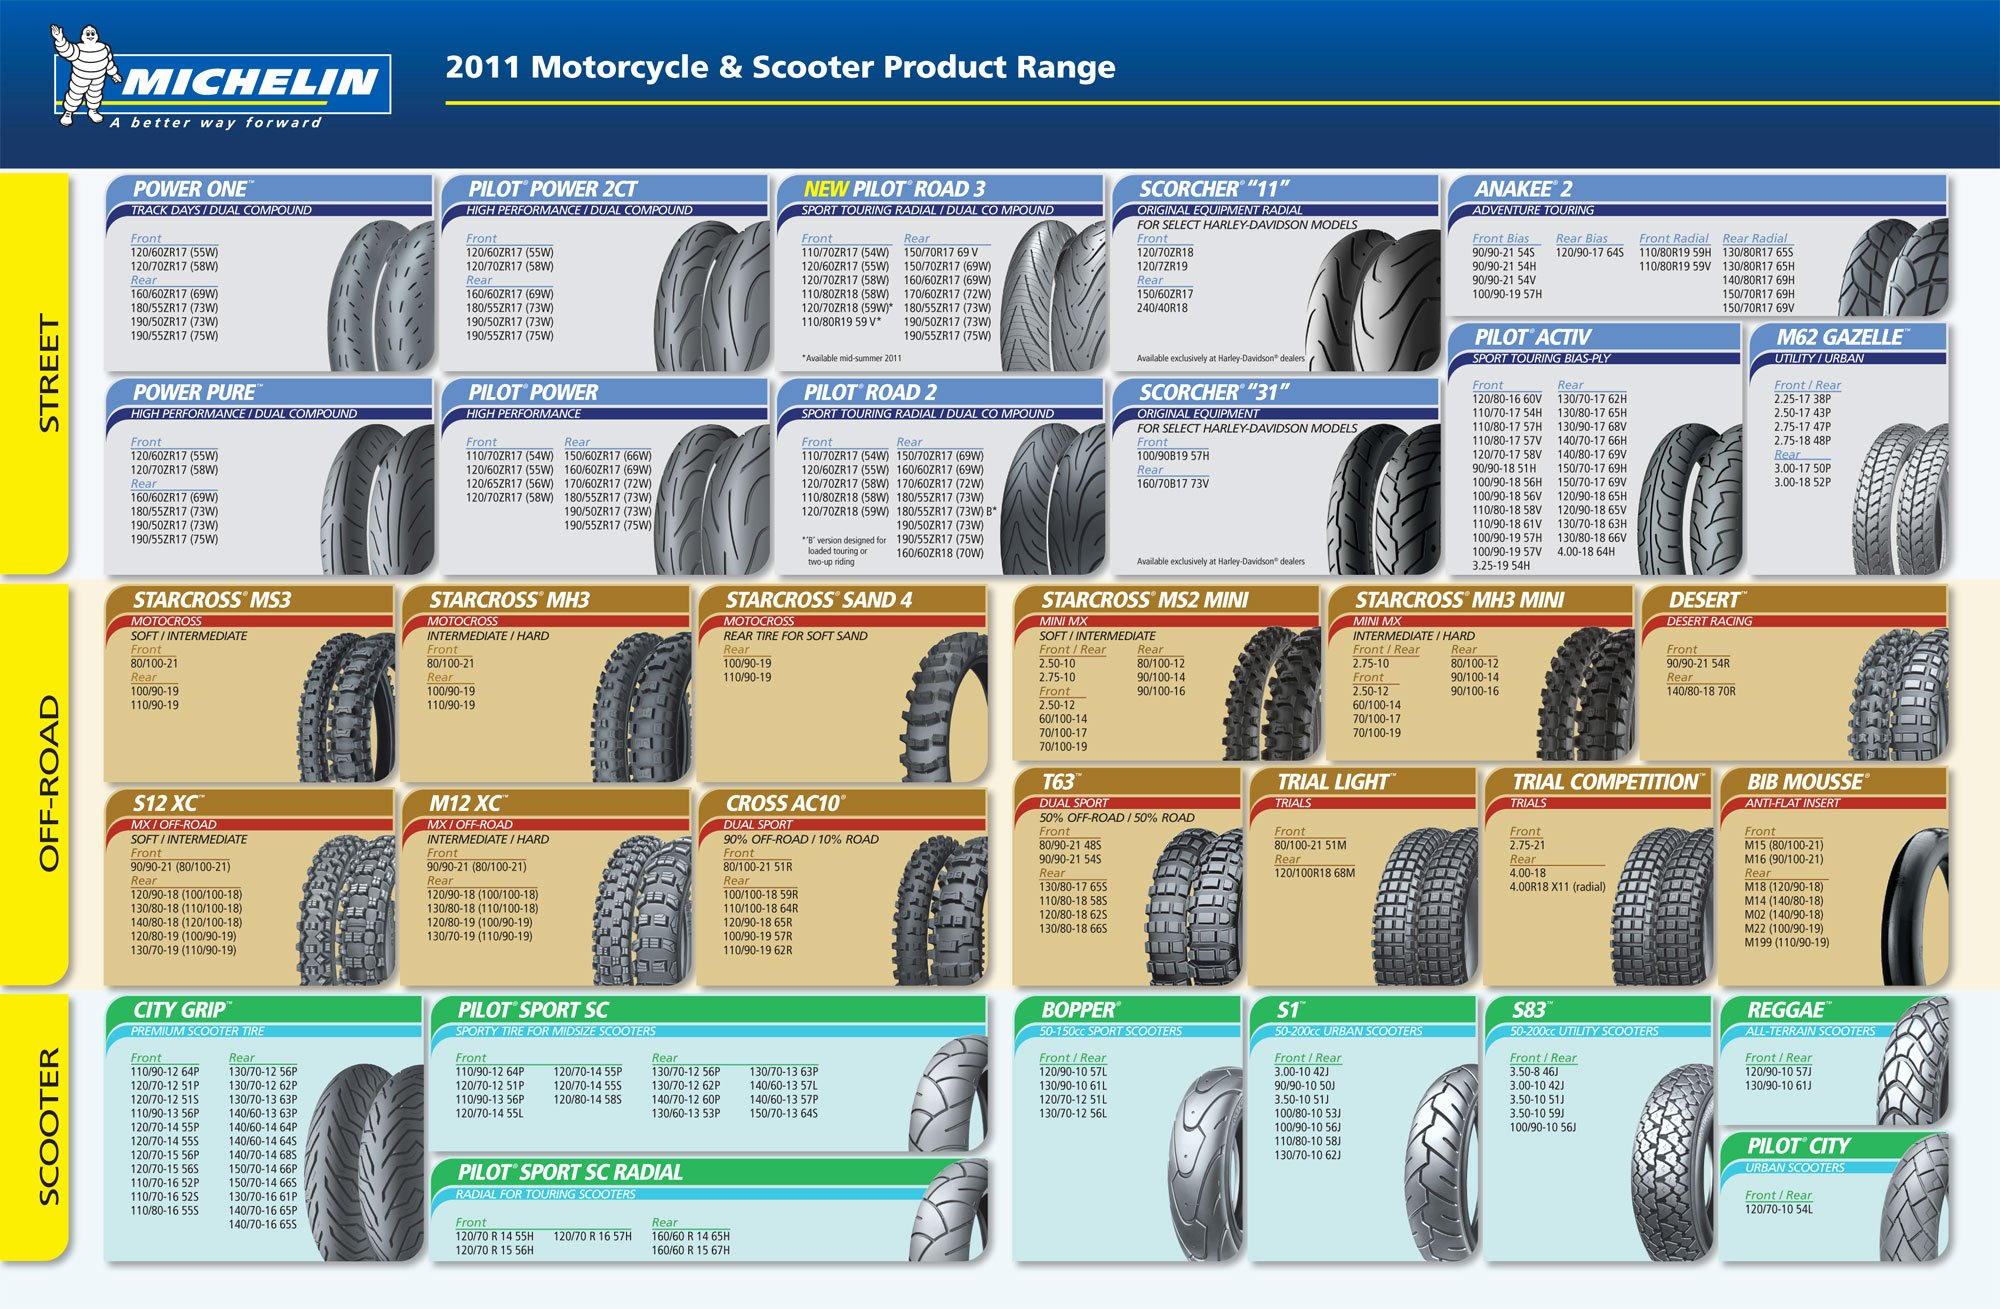 Tire Size Comparison Graphic Best Of Michelin Motorcycle Tires